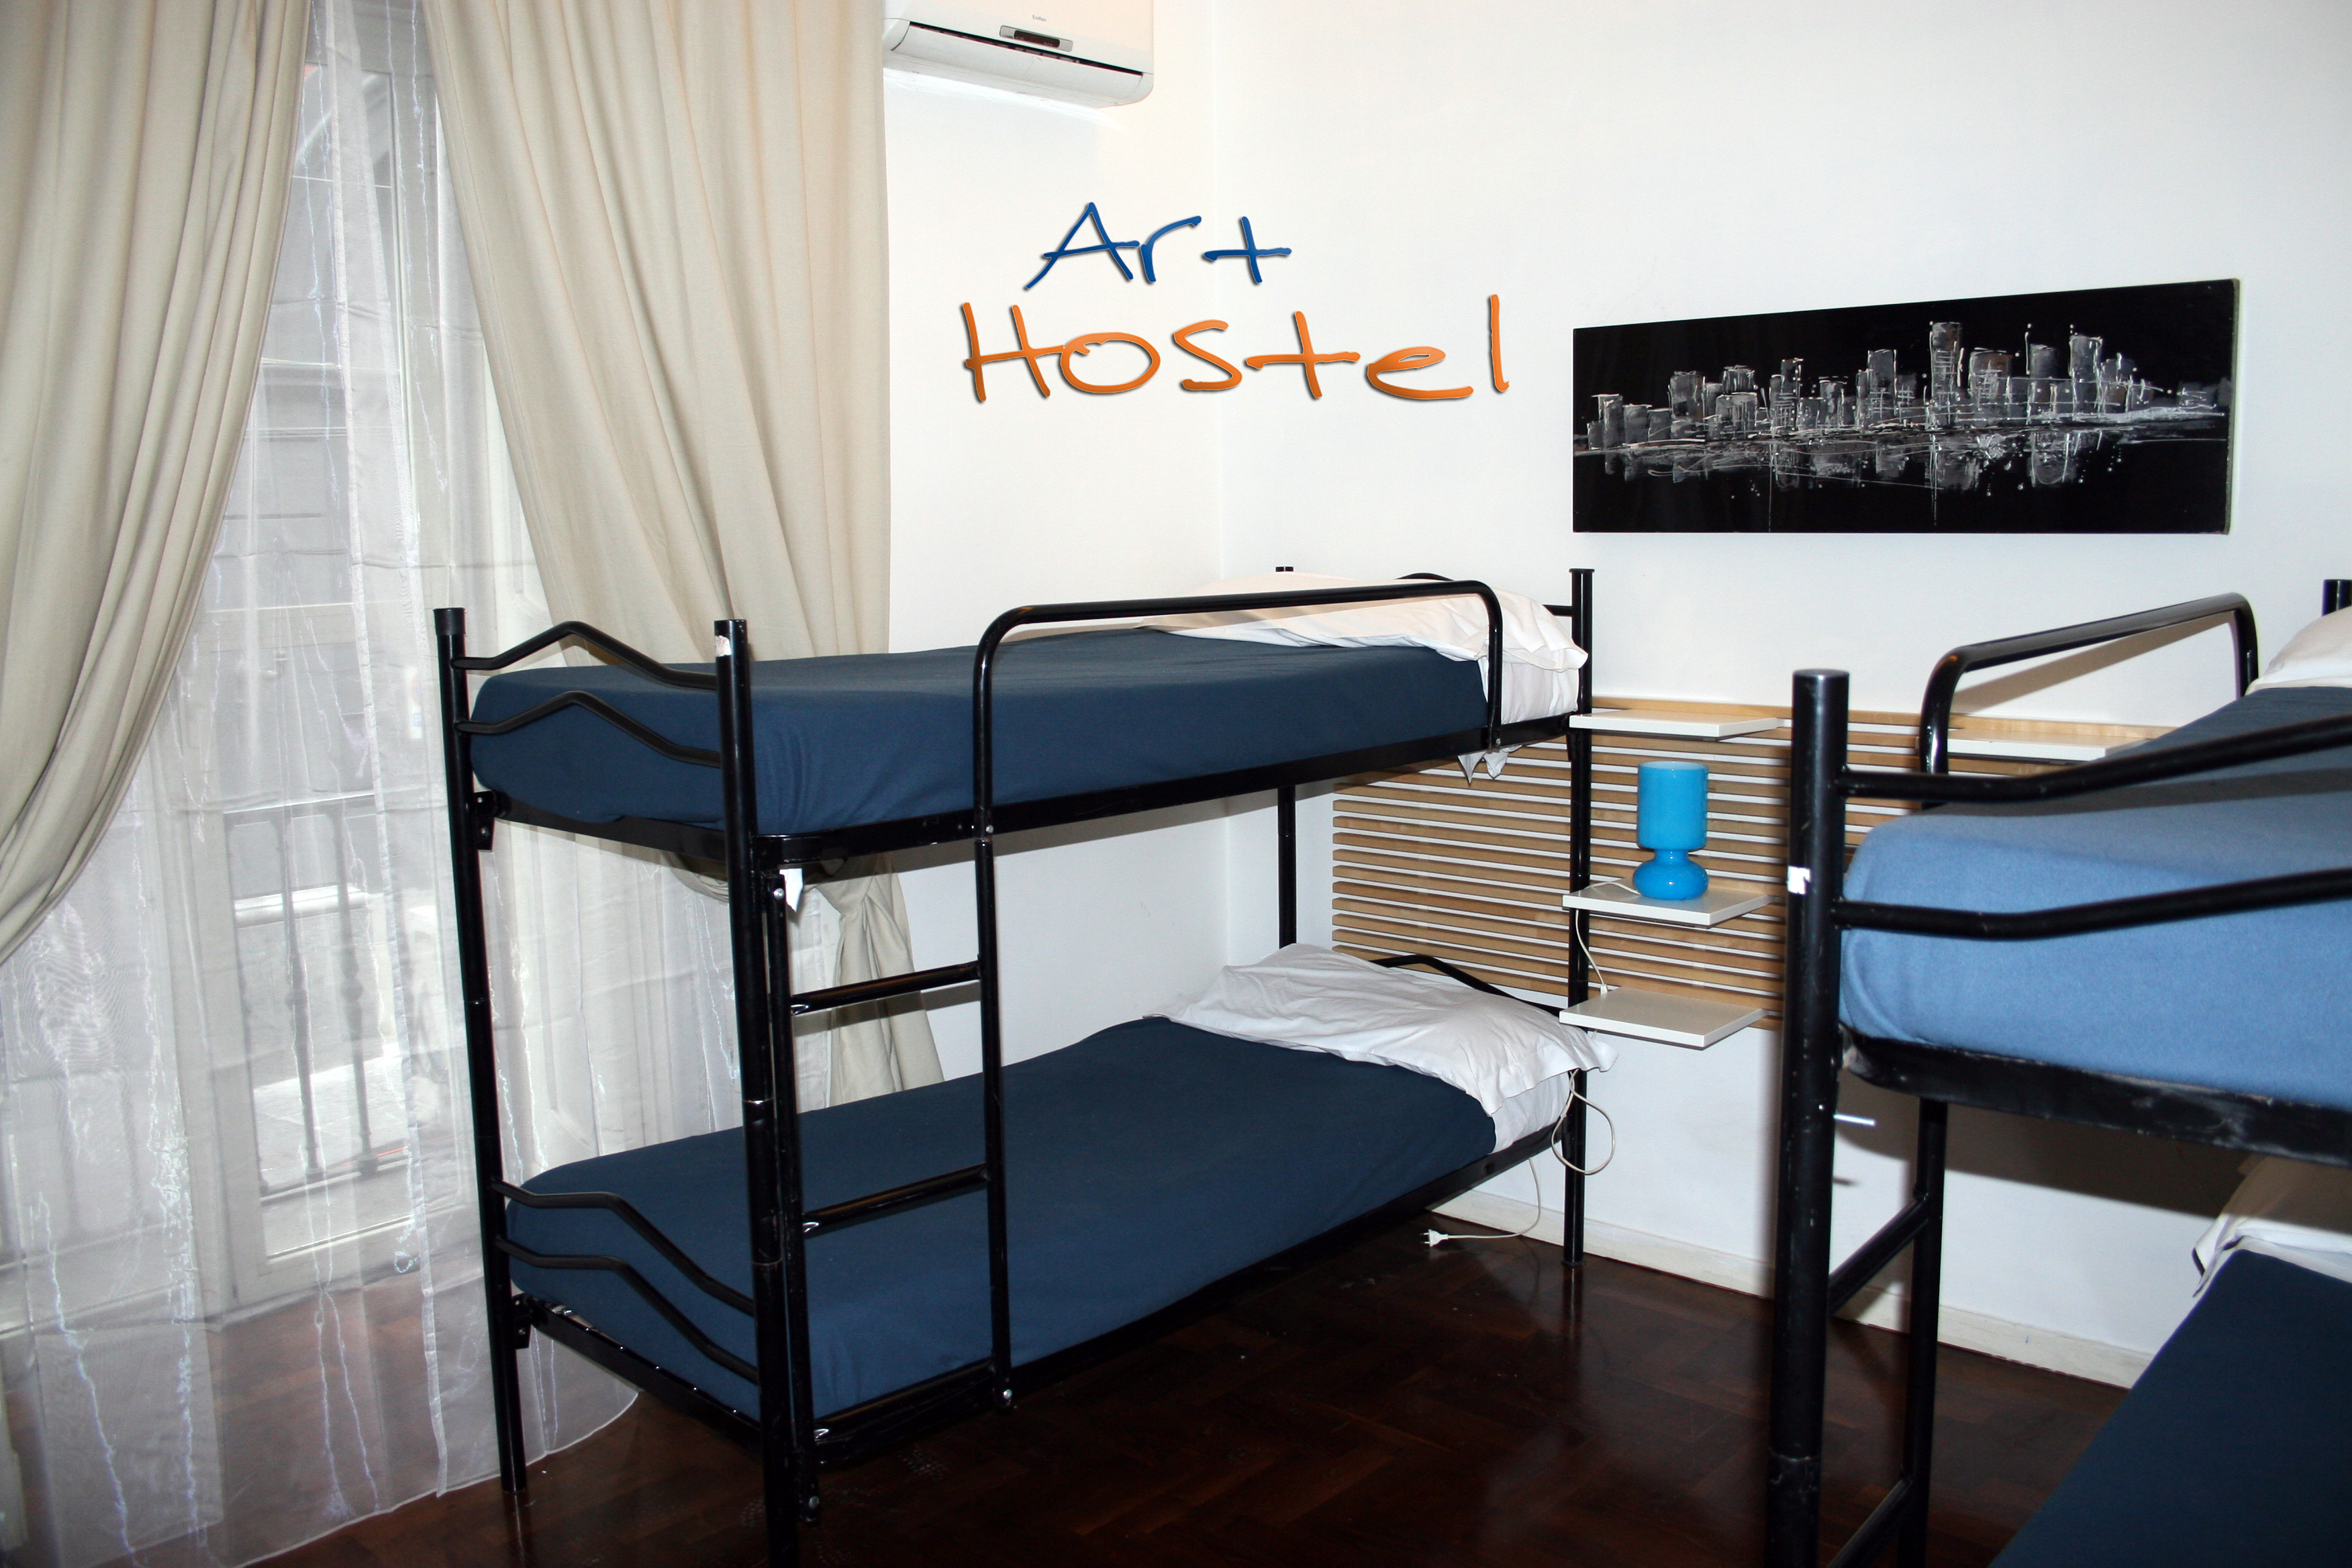 Art Hostel Napoli